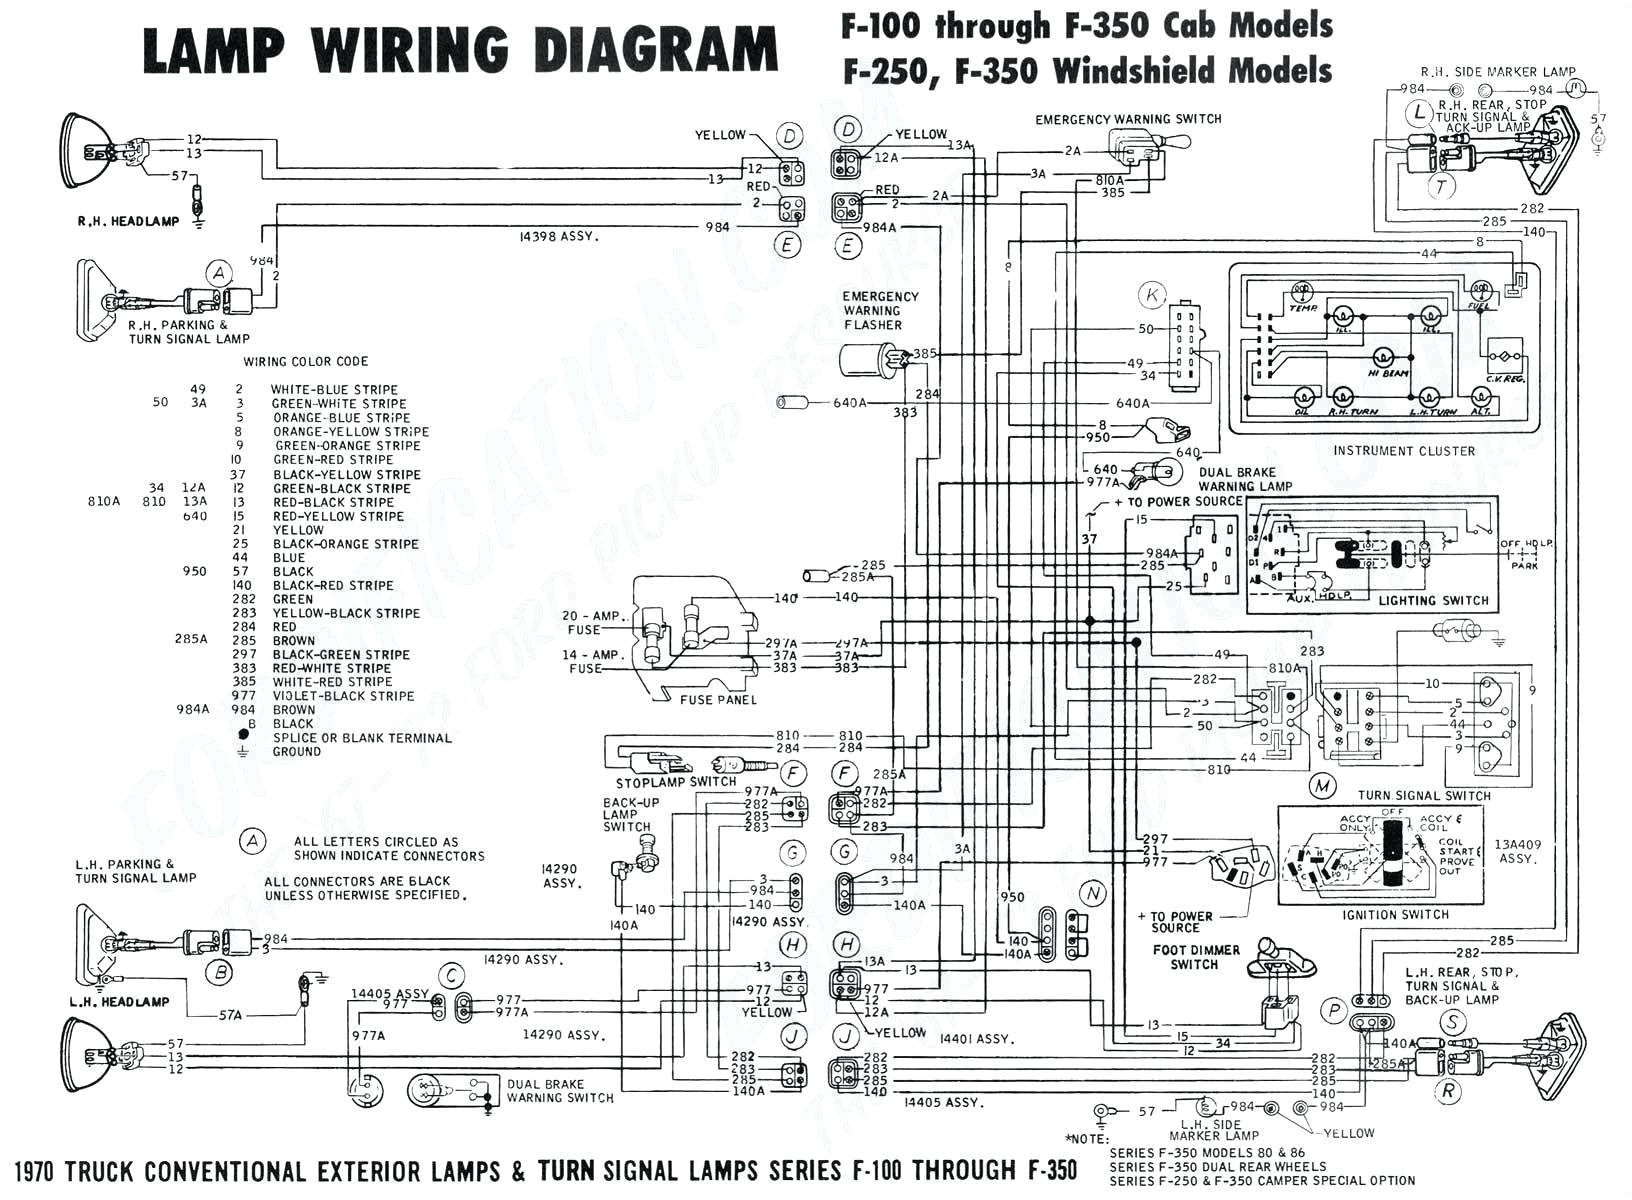 heater hose diagram to download 2002 ford explorer heater hose wiring diagrams free download further 65 mustang heater fan diagram